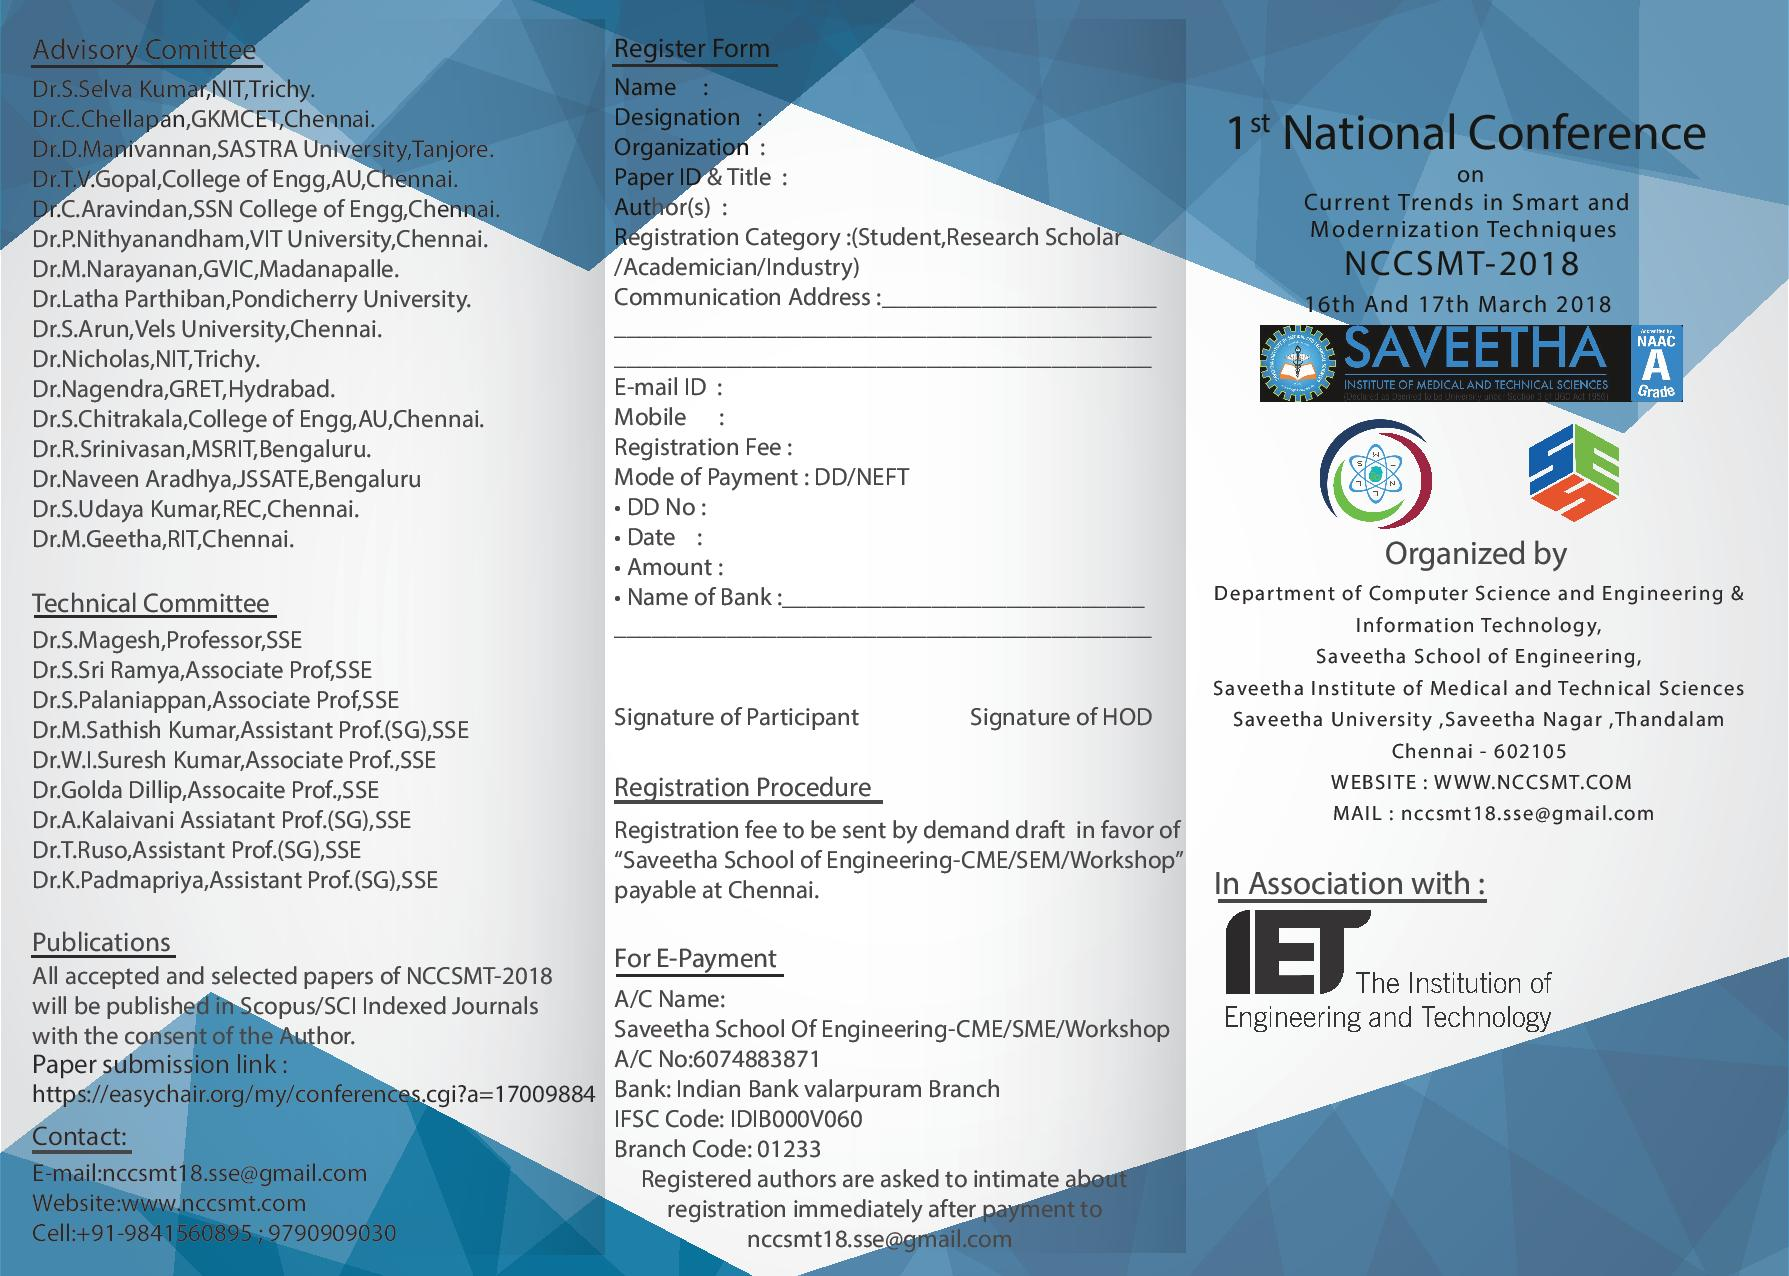 National Conference on Current trends in Smart and Modernization Techniques NCCSMT 2018